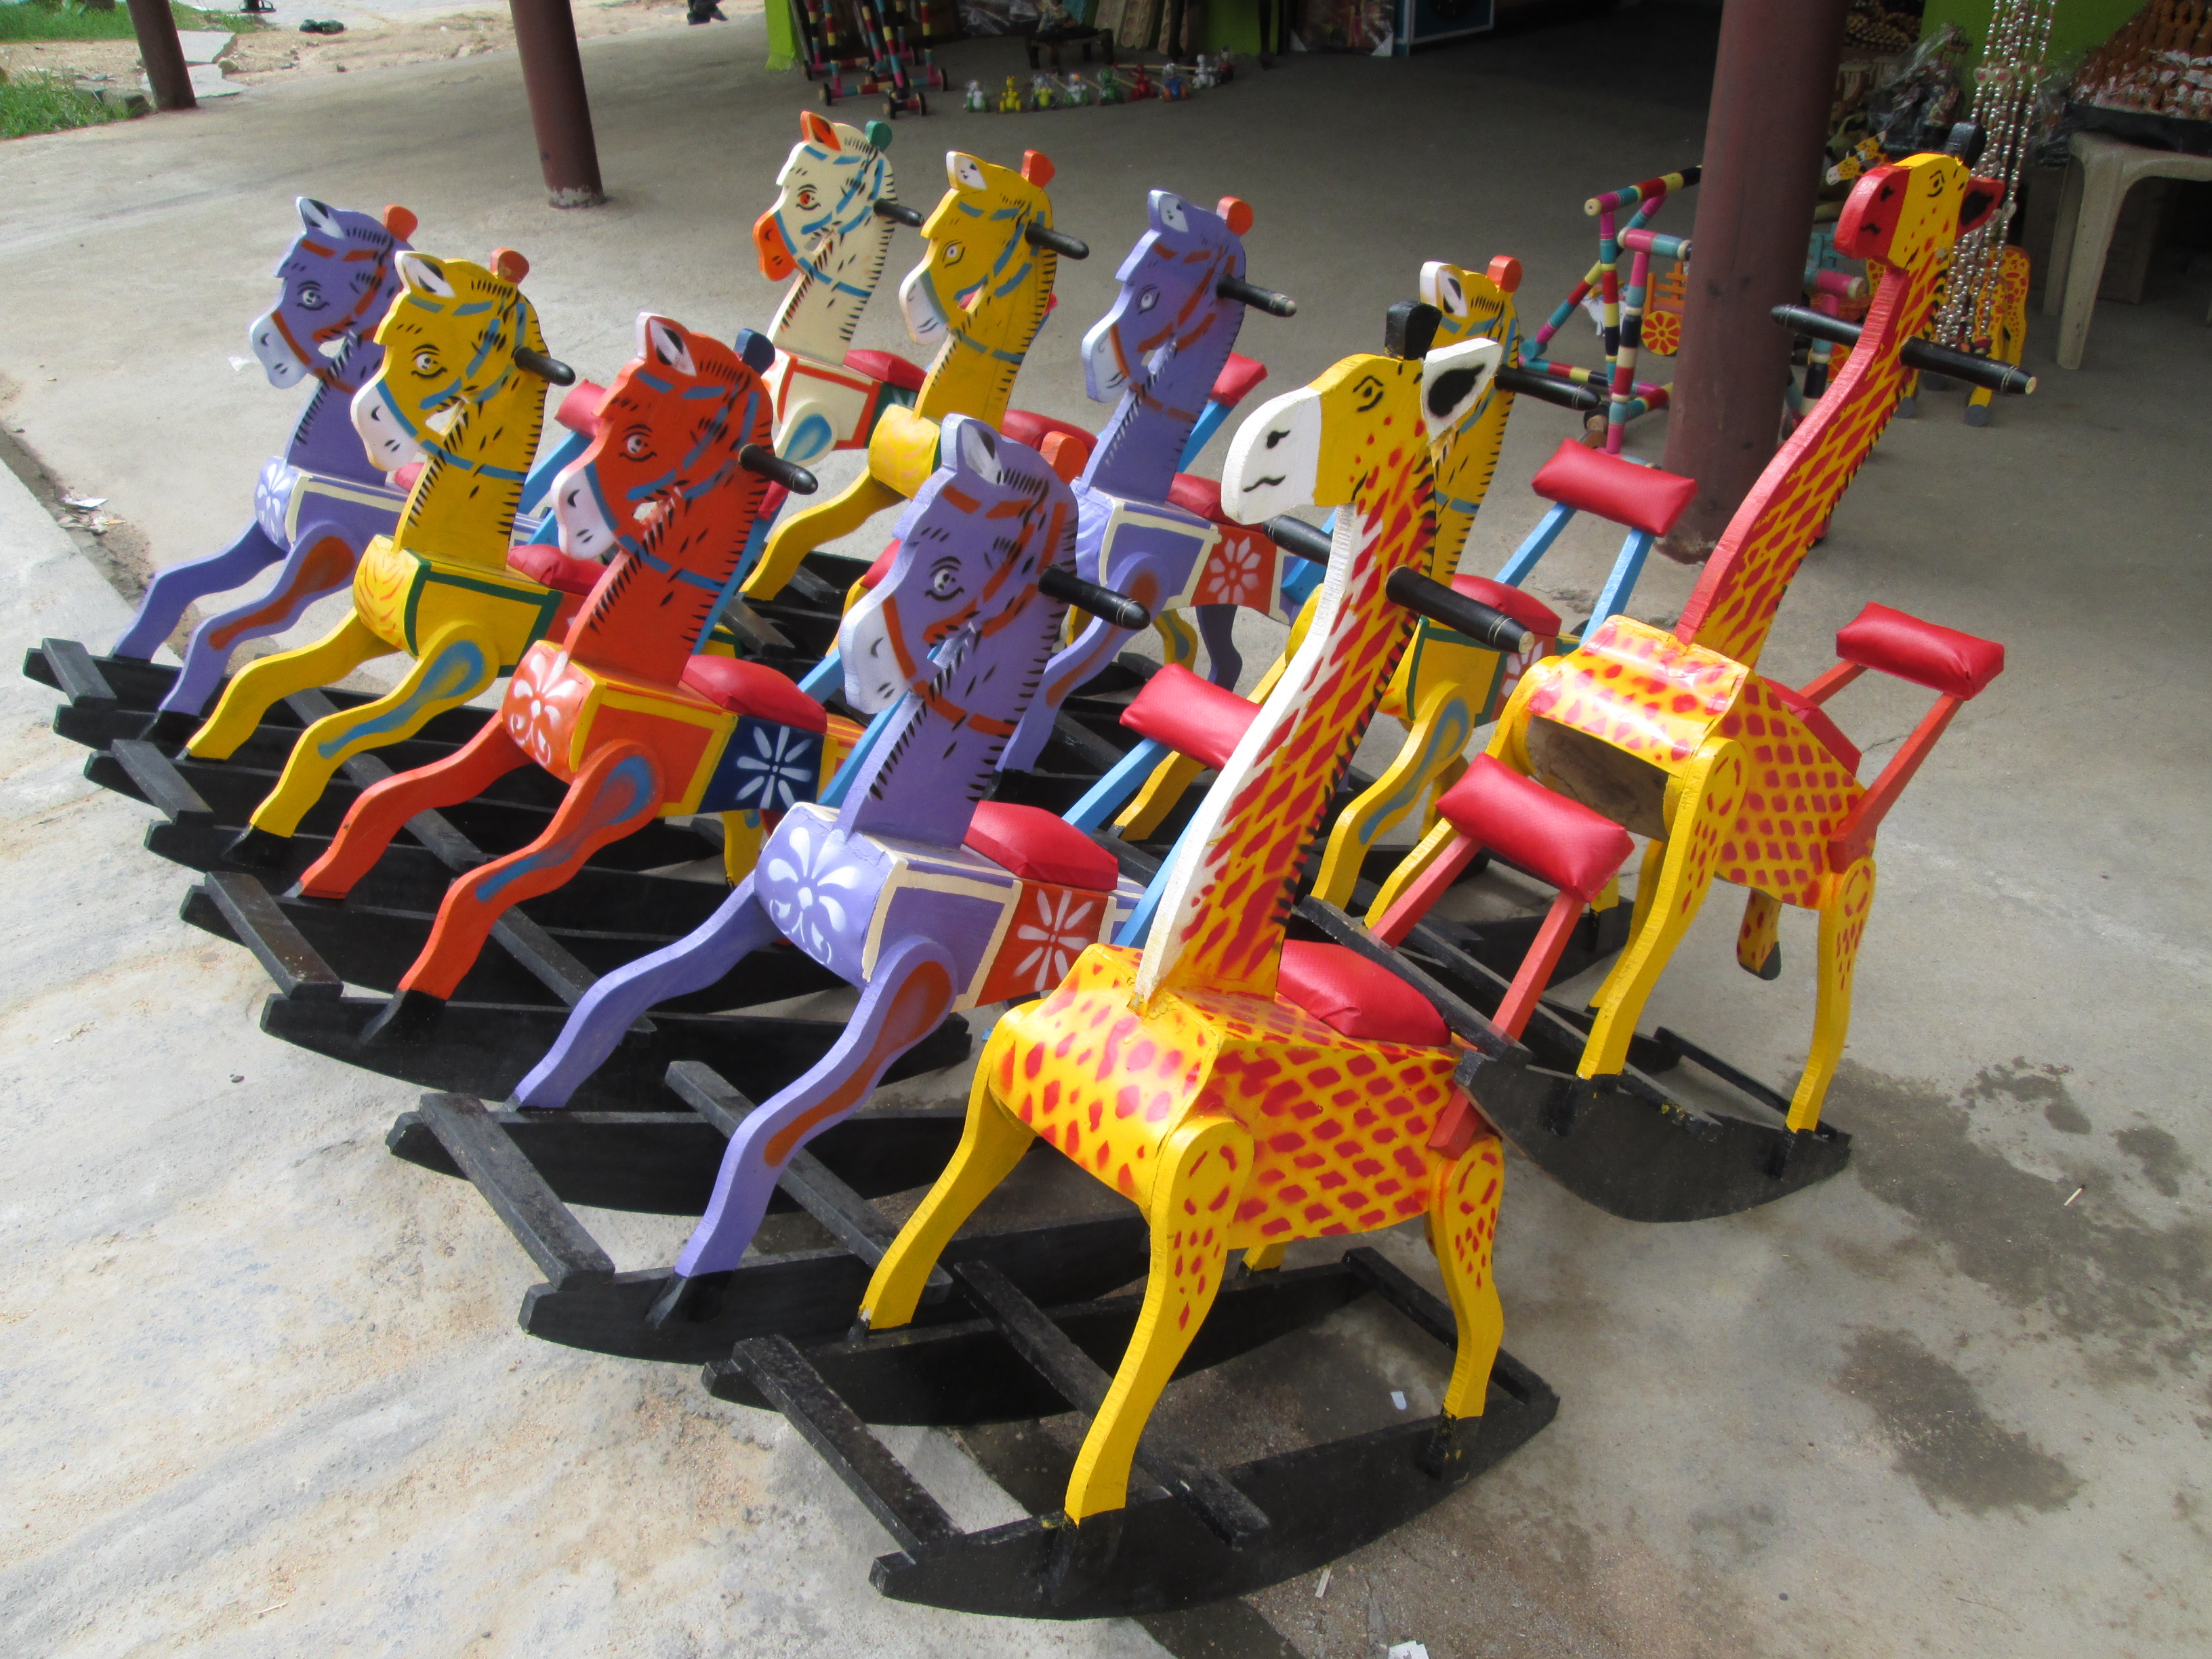 Channapatna Land Of Toys Channapatna Traveller Review